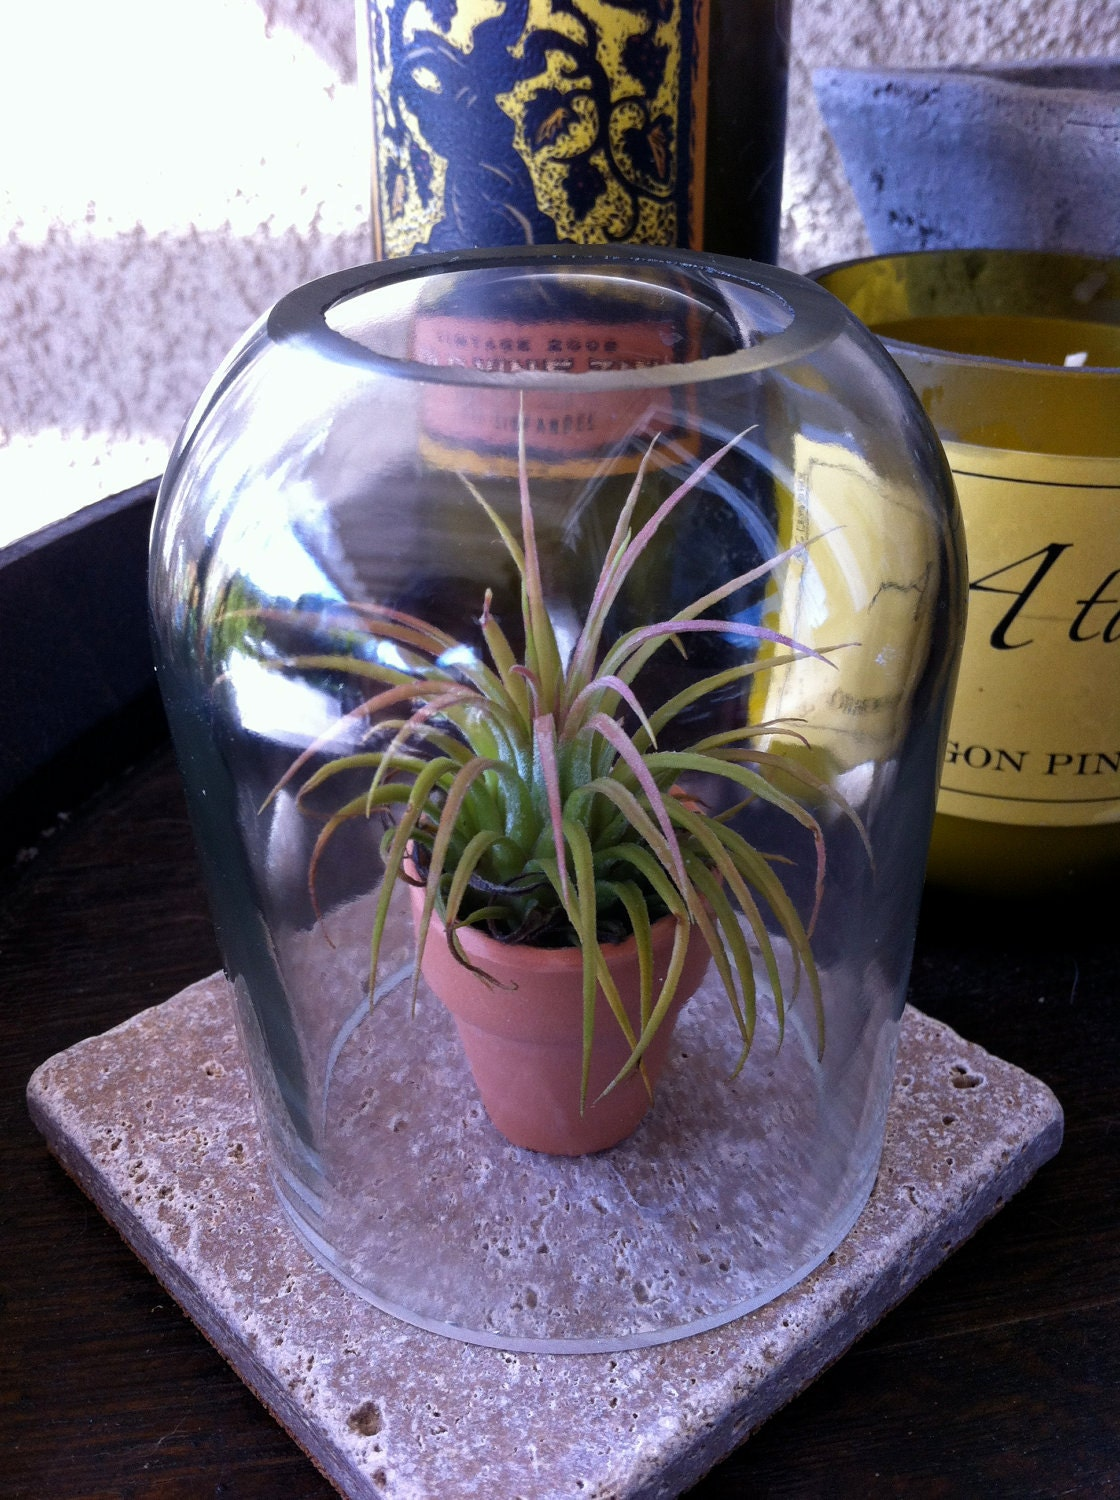 Recycled Wine Bottle Terrarium with Ionantha air plant in terra cotta pot